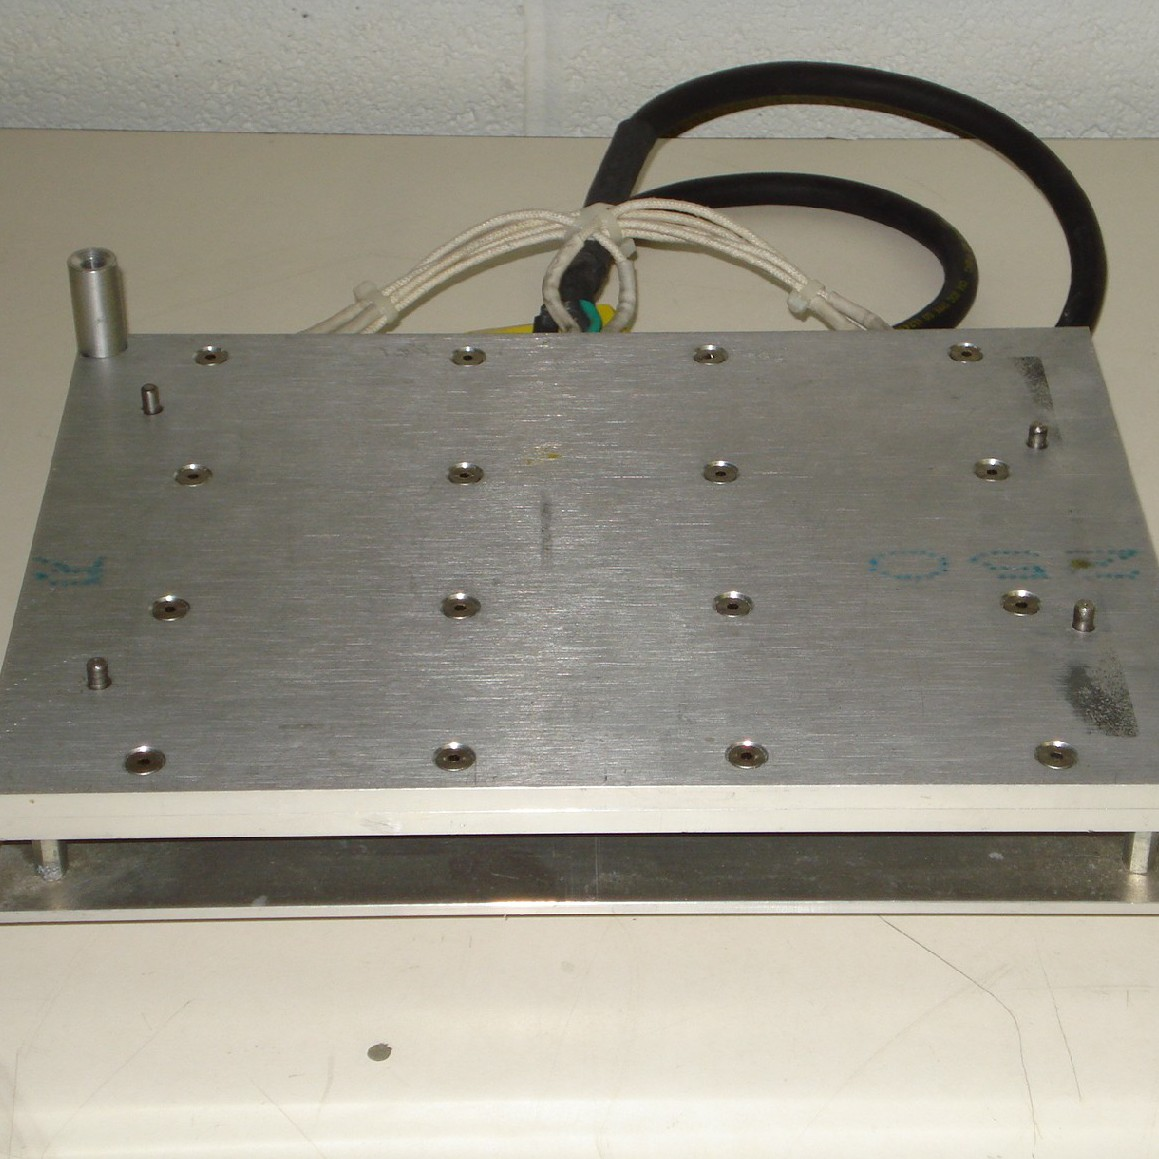 Lab-Line 4625 Heater for Titer Plate Shaker  Image